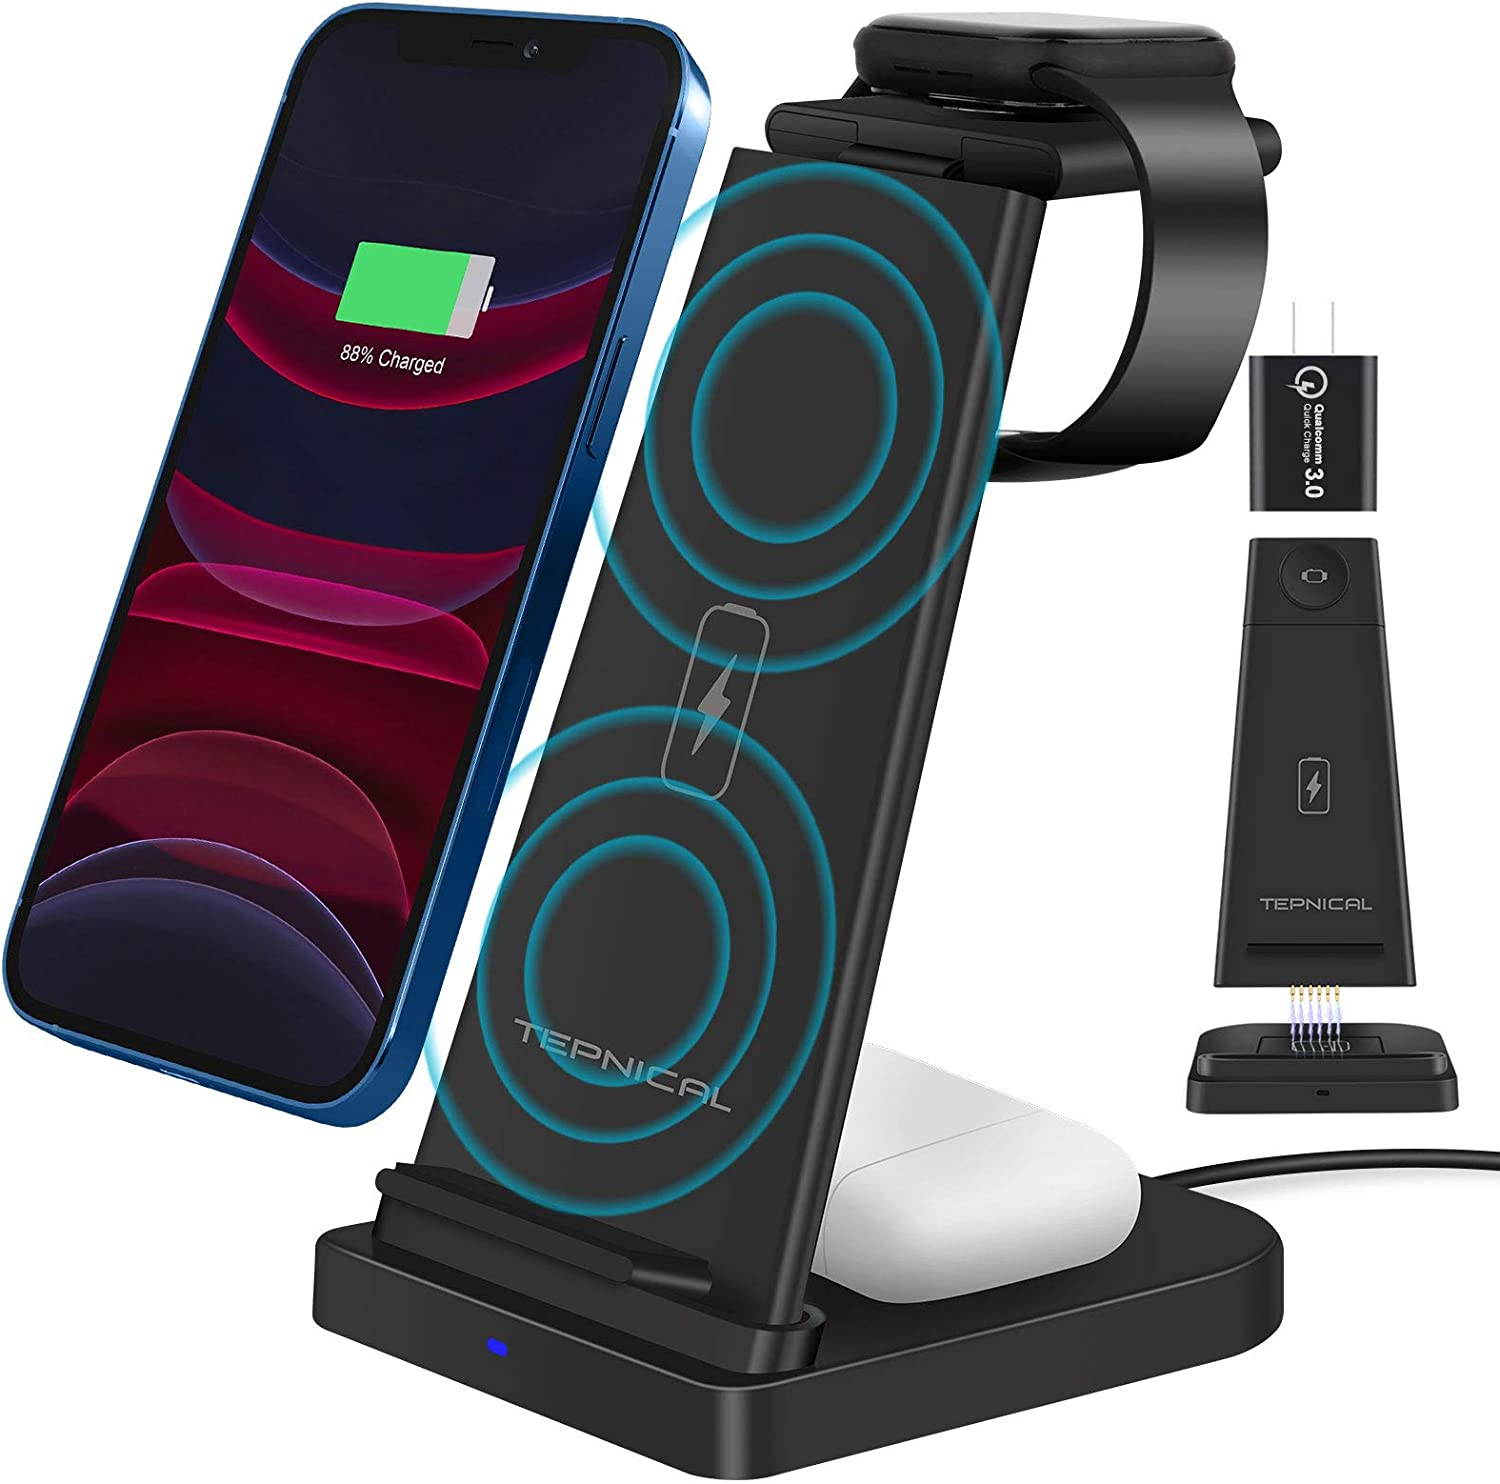 Wireless Charger,Qi-Certified 15W Max Fast Wireless Charging Stand,3 in 1 Charging Dock Station with Quick Adapter for Apple Watch 6/5/4/3/2/SE,Airpods Pro,iPhone 12 Pro/11/XR/12/Xs/X/8P/8,Qi Phones